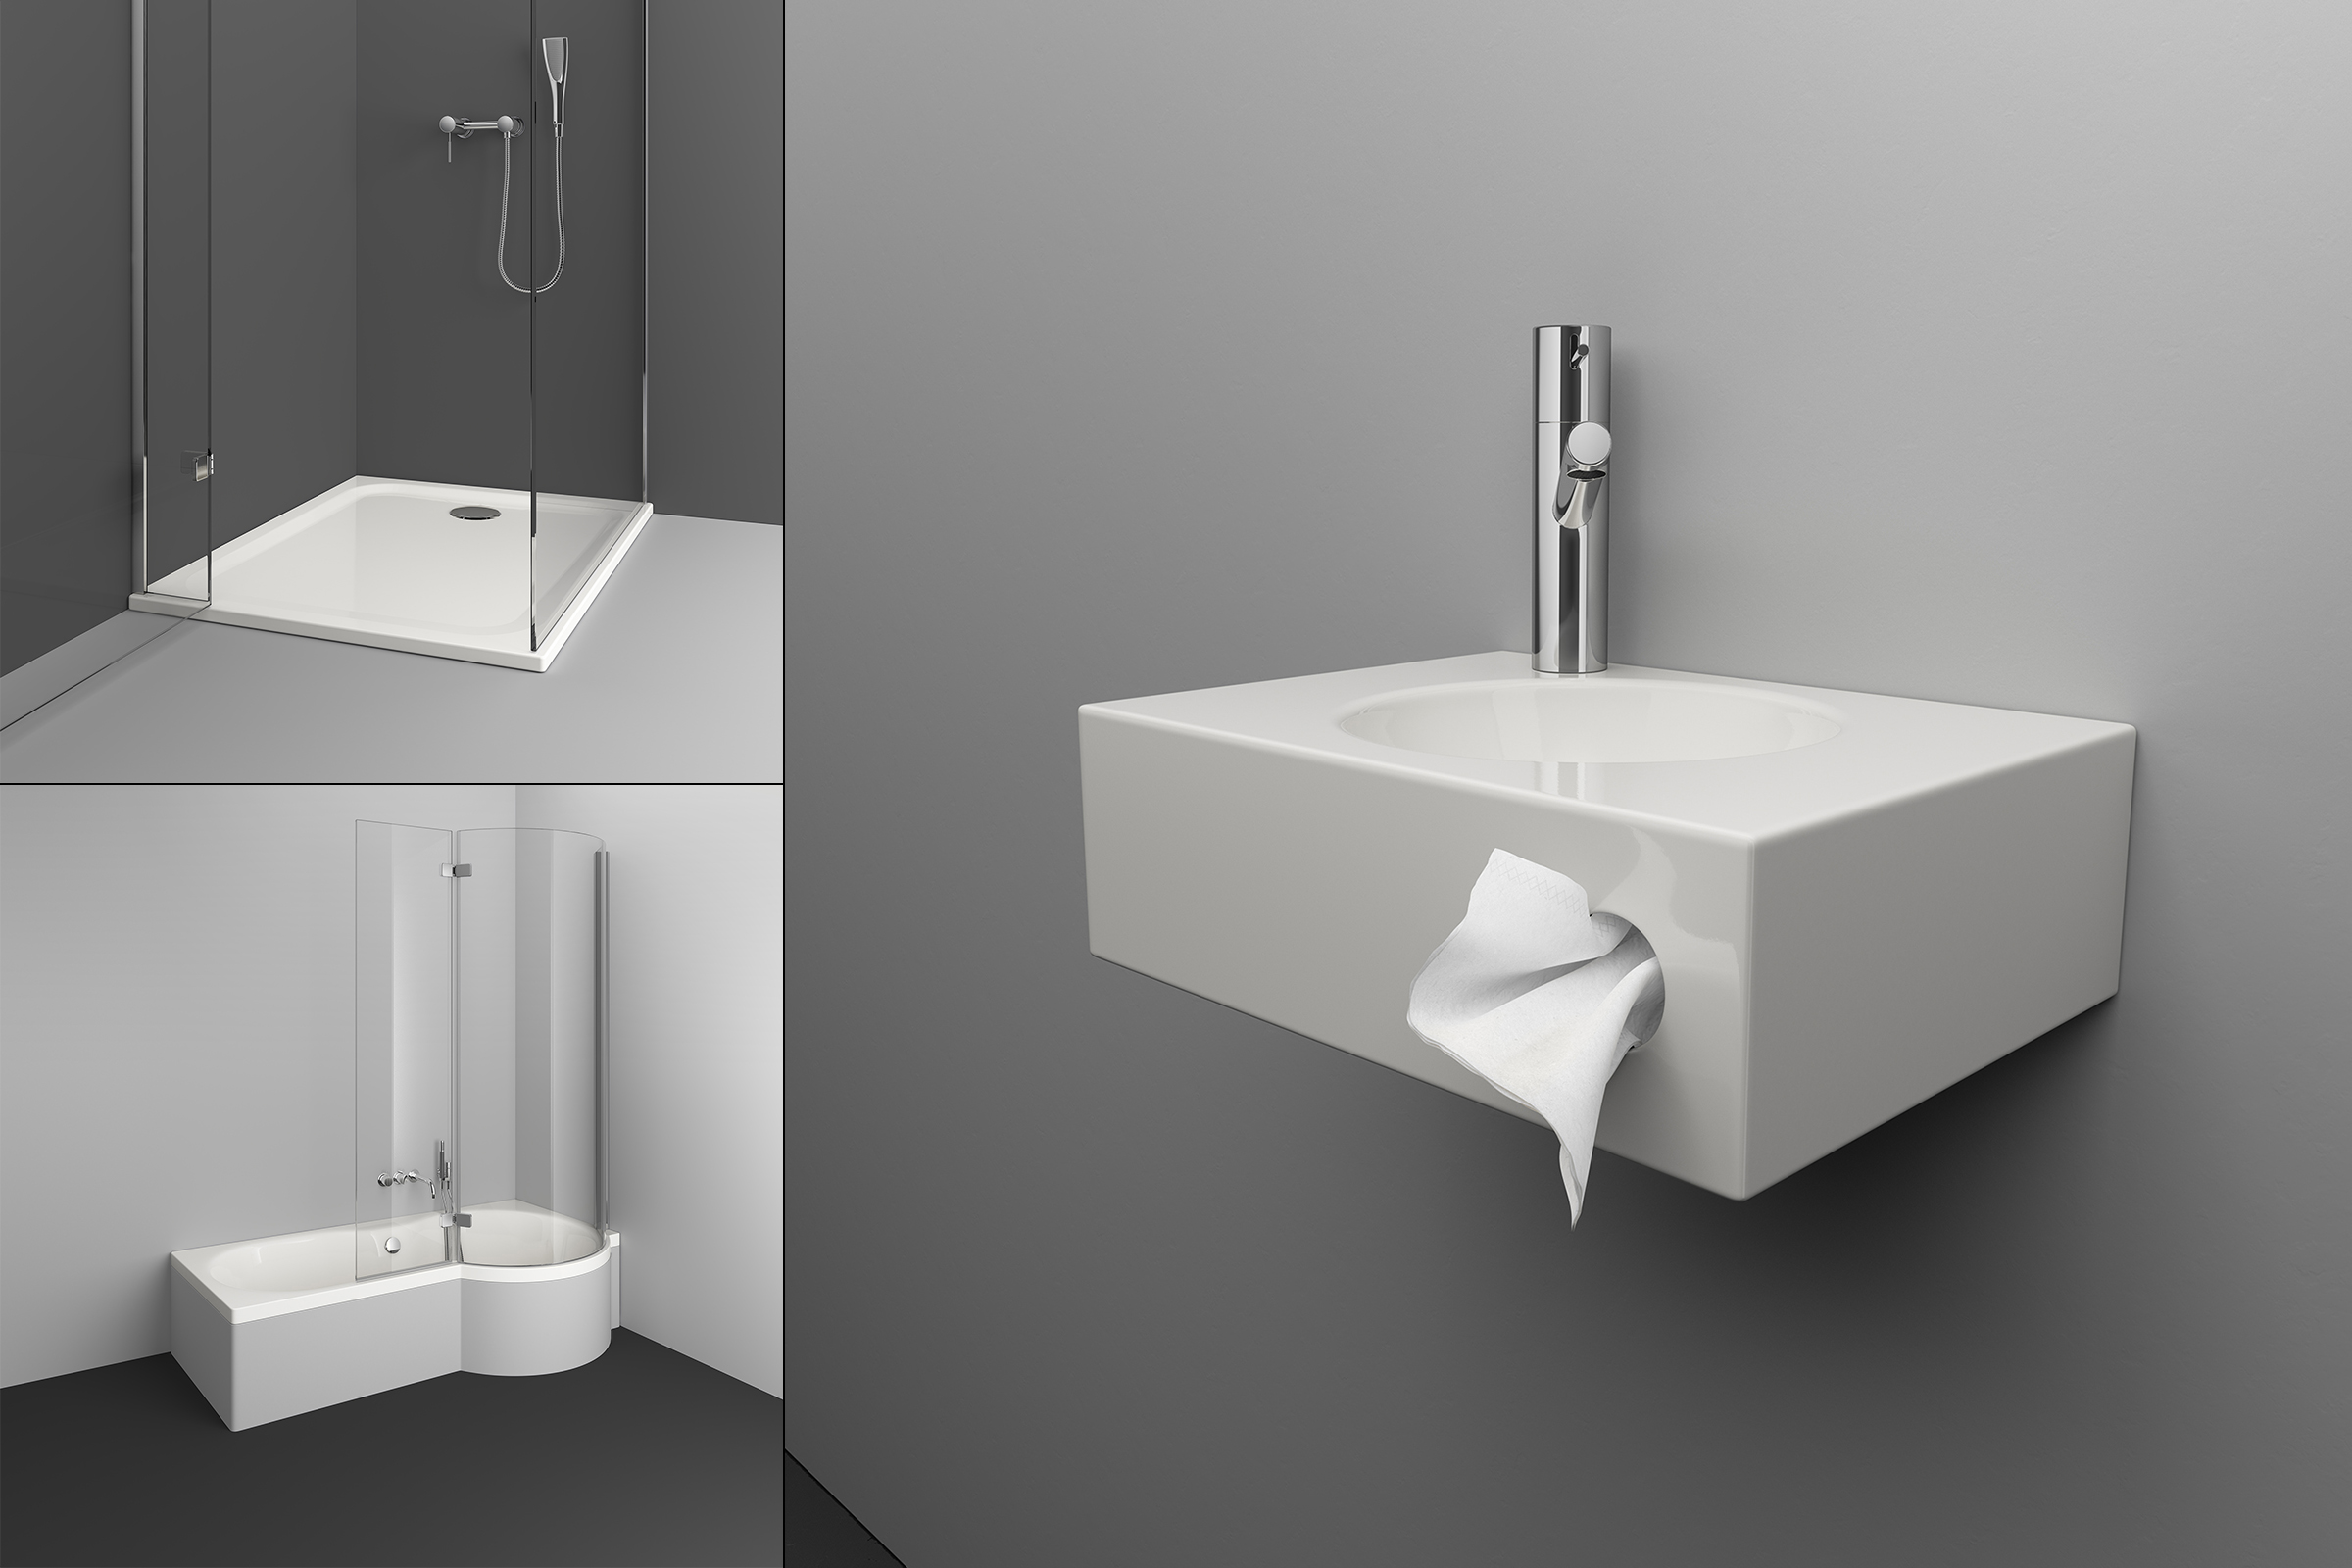 frederic müller mueller digital image making cgi 3d-rendering photorealistic digital art product visual bathroom supply